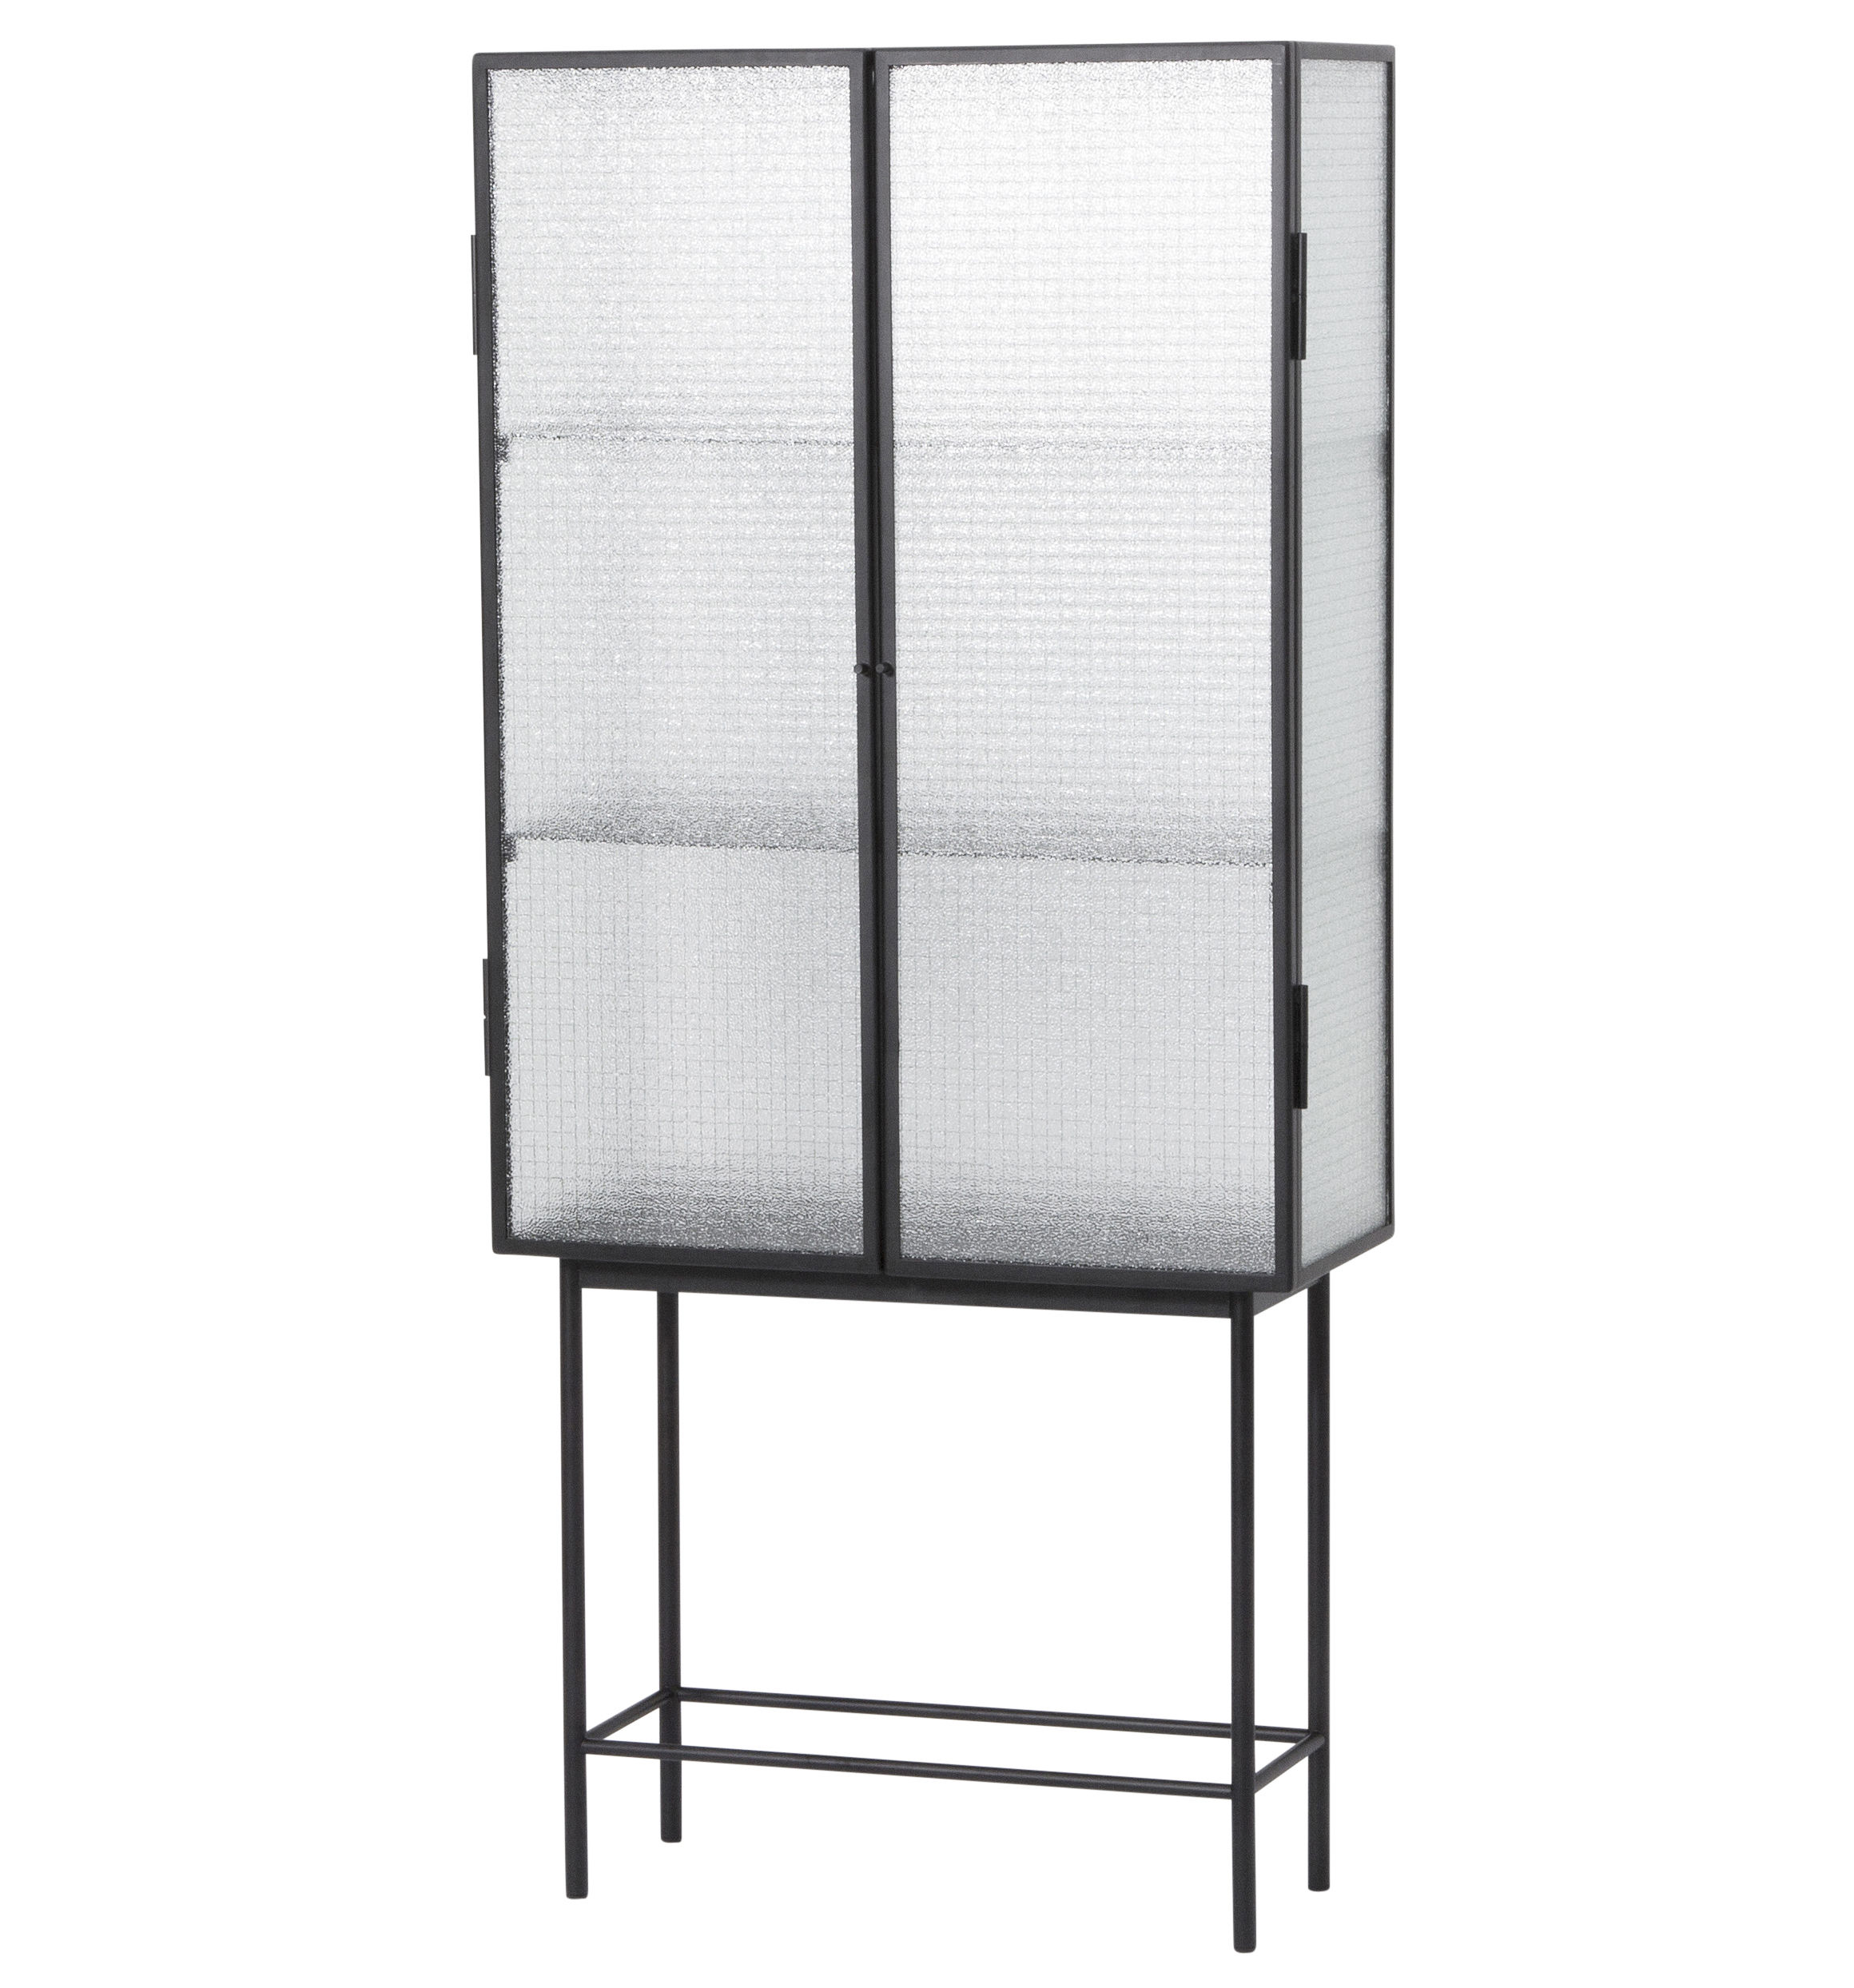 Furniture - Bookcases & Bookshelves - Haze Showcase - Glass & metal / L 70 x H 155 cm by Ferm Living - Wired glass / Black - Lacquered metal, Reinforced glass